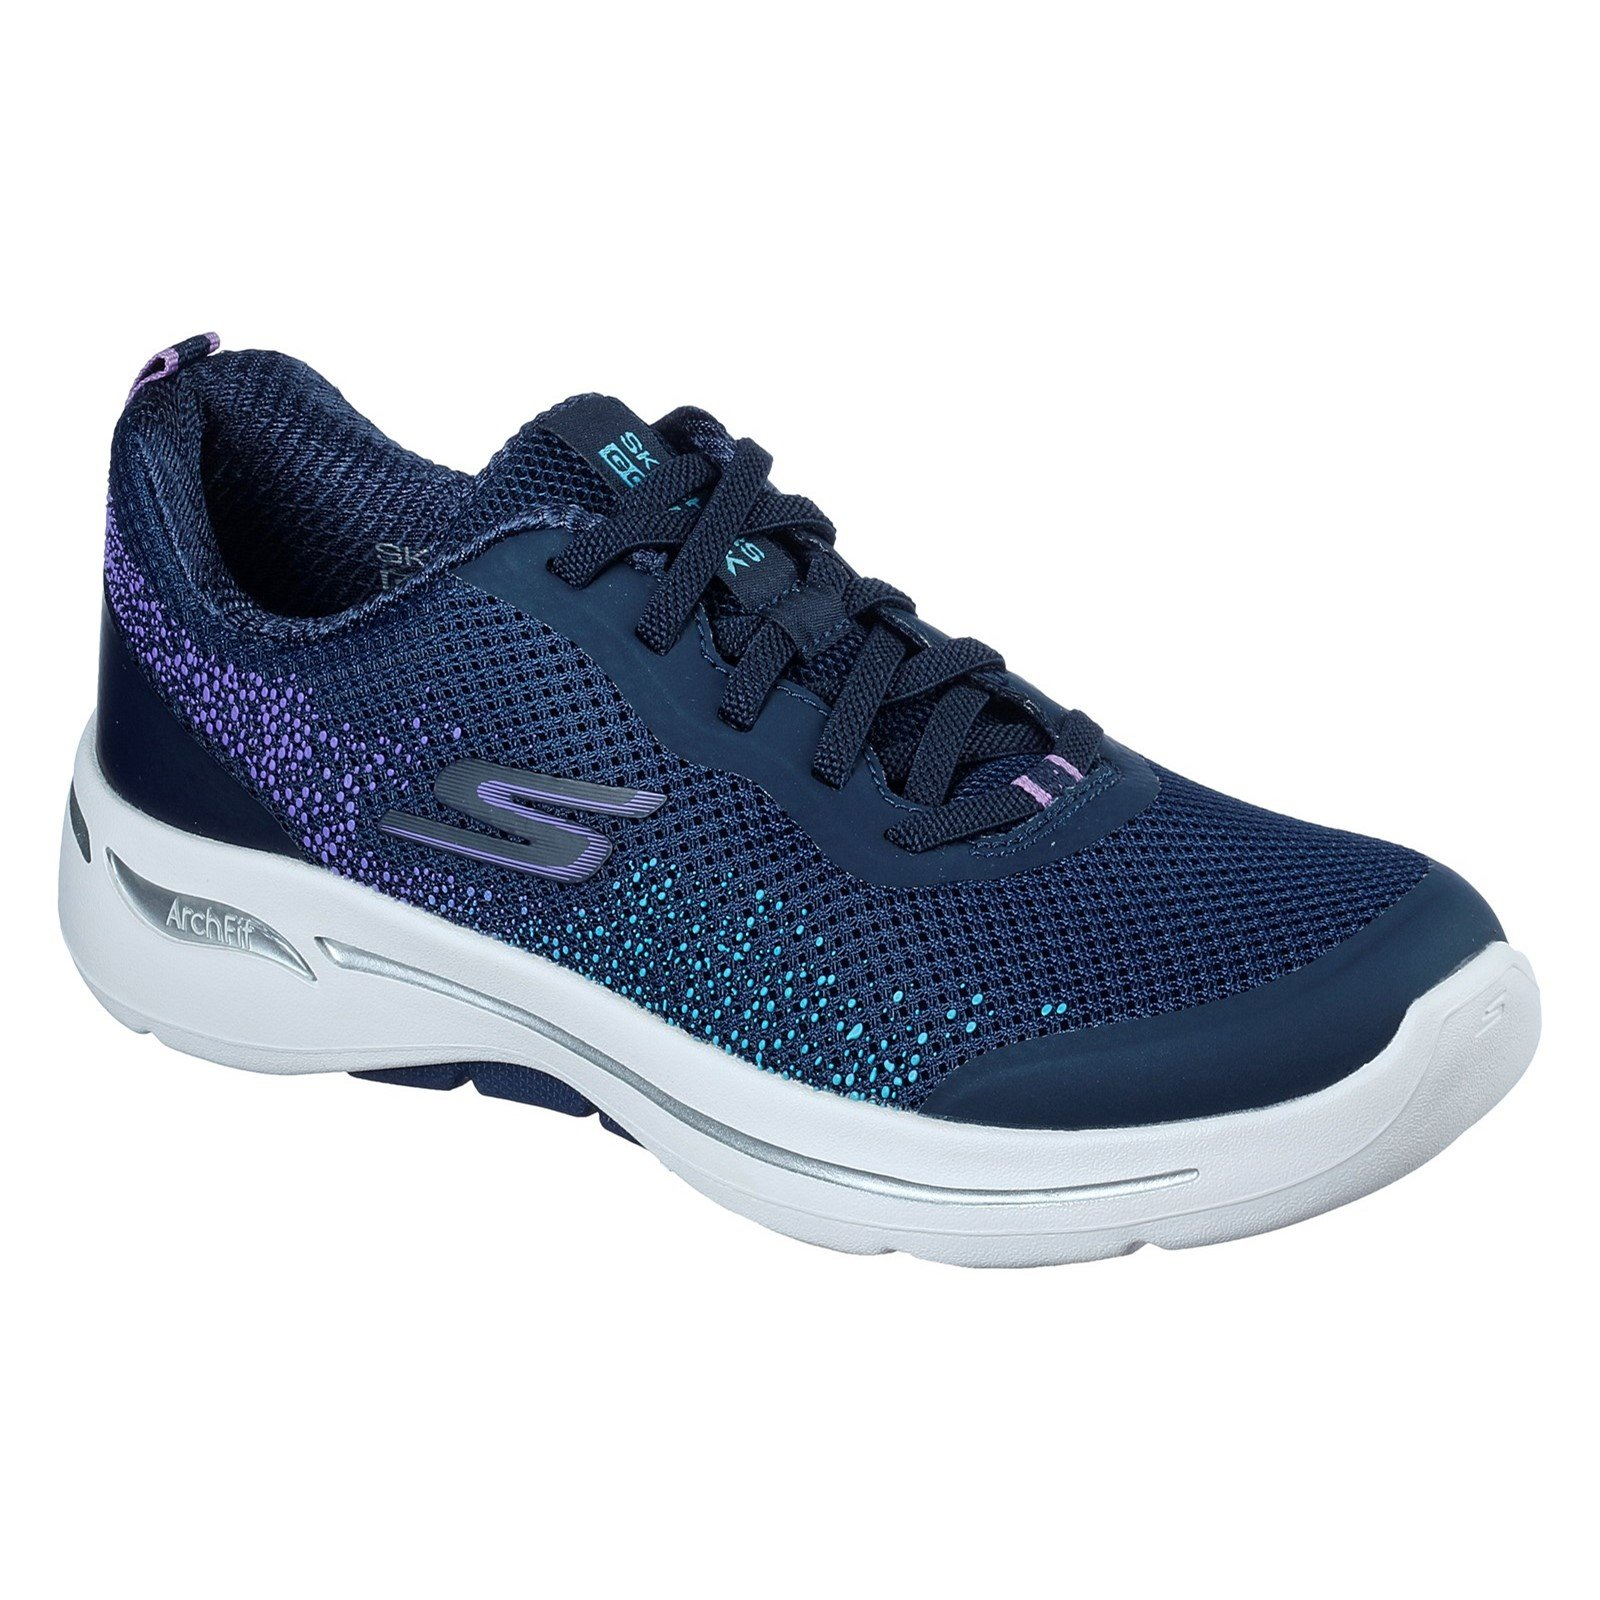 Skechers Women's Go Walk Arch Fit Flying Stars Trainer Various Colours 32841 - Navy/Lavender 3